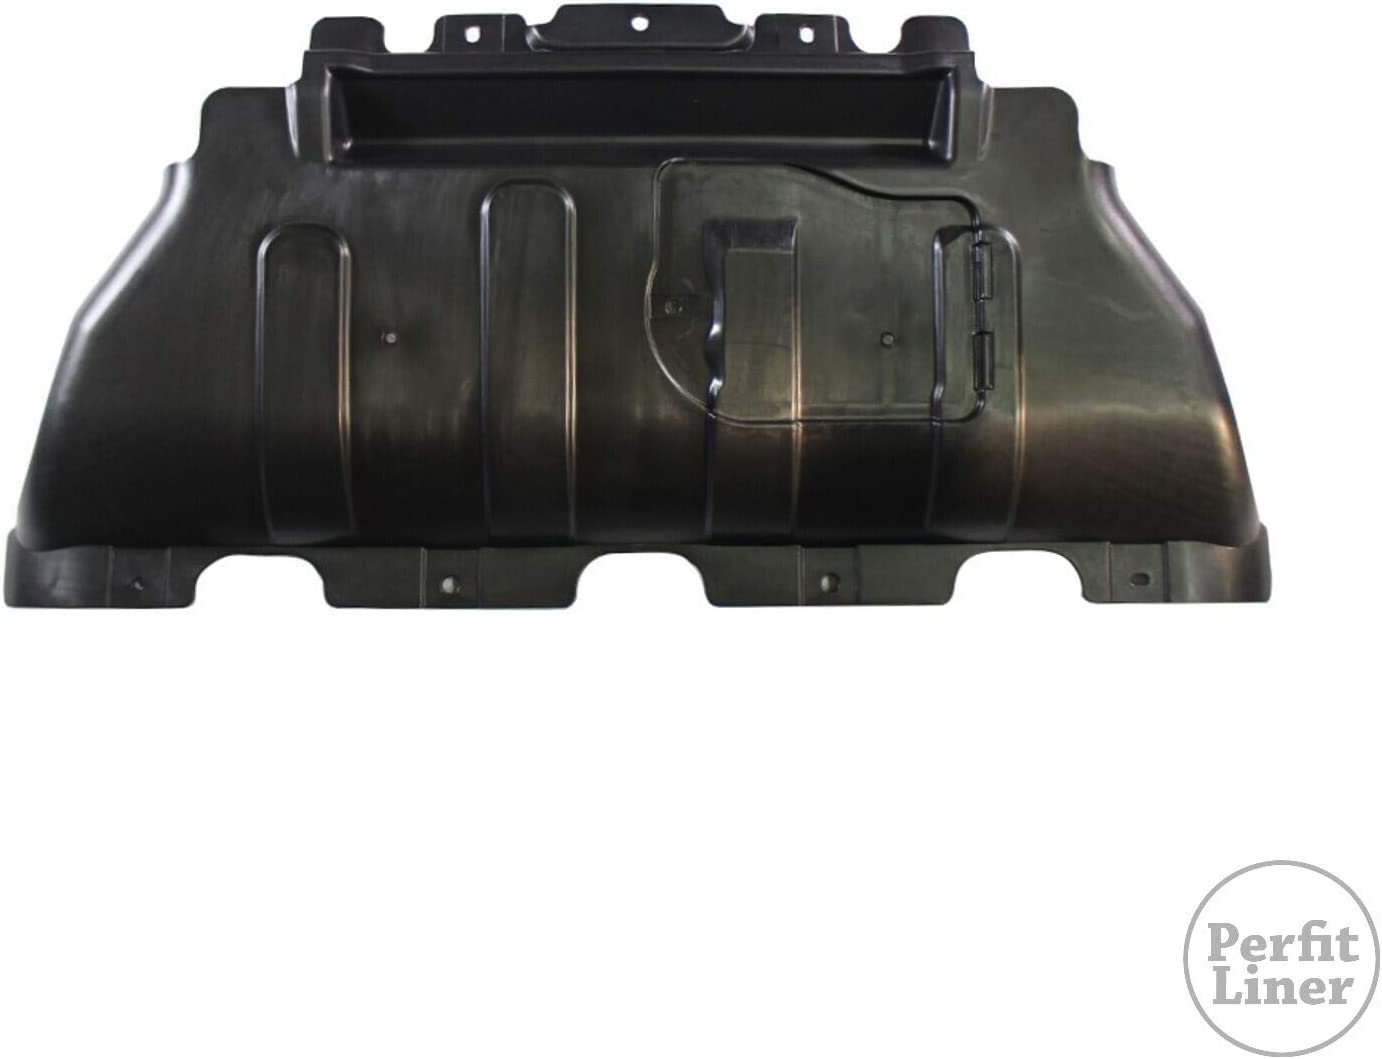 Perfit Liner New Replacement Parts Front Front Half Lower Engine Cover For Dodge Charger Without Police Package Fits CH1228107 57010338AD